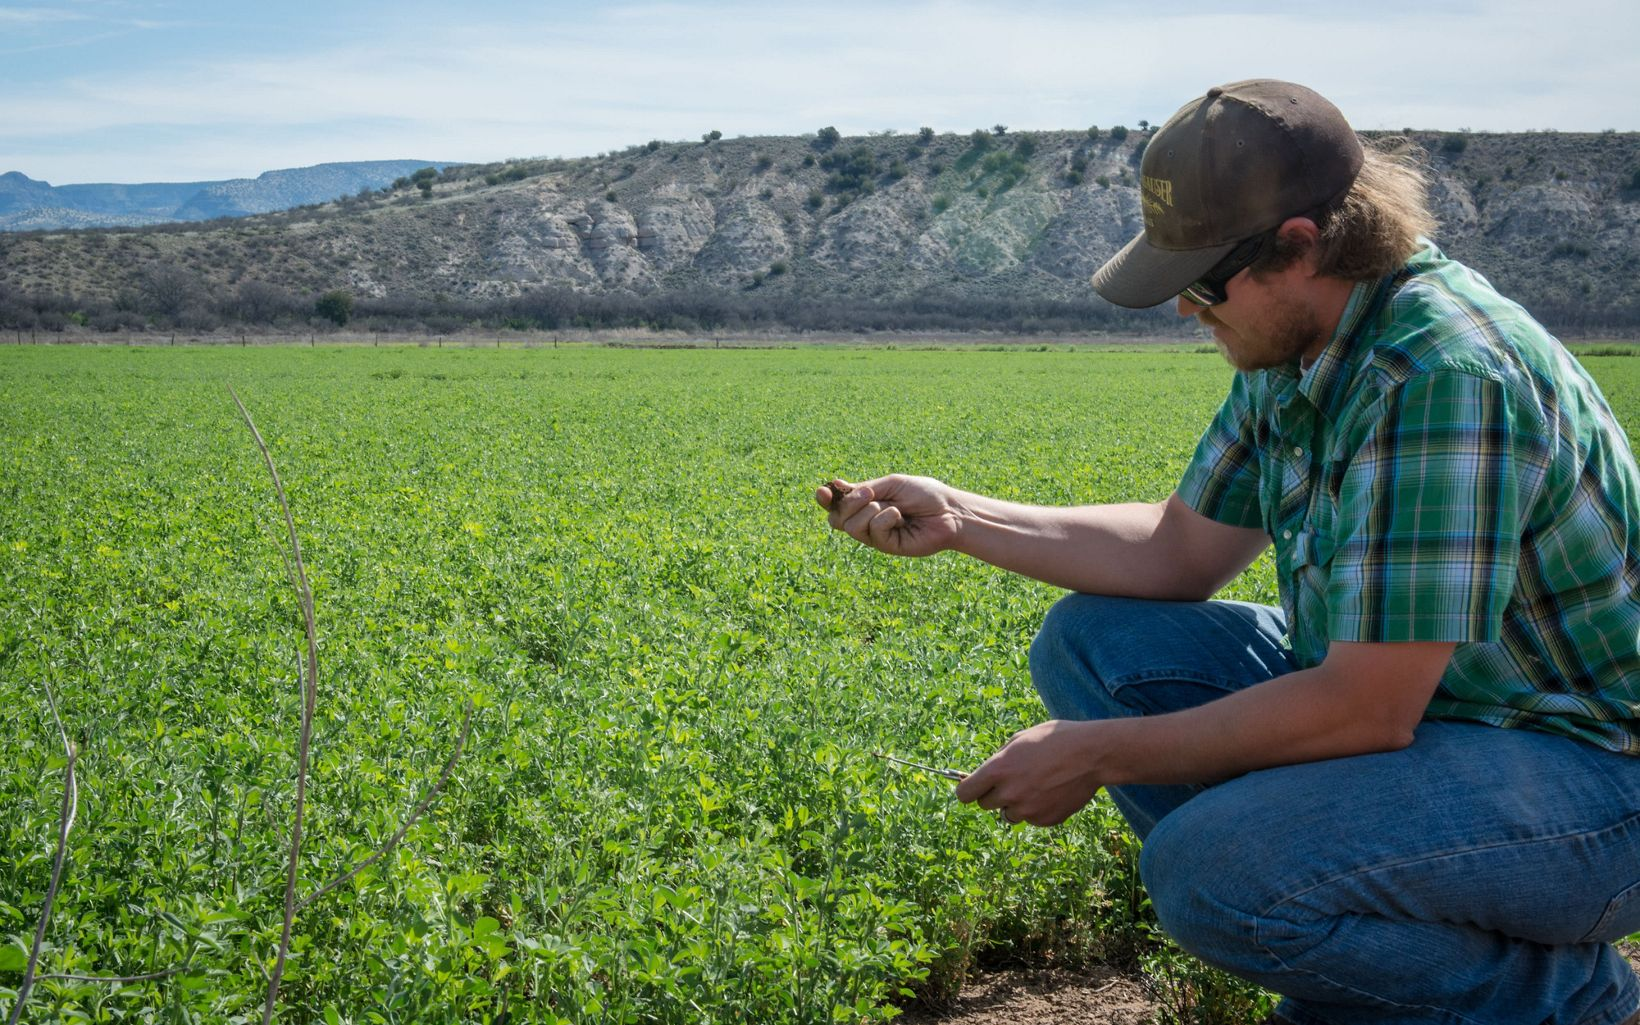 TNC is working with him and other farmers in the Verde Valley to increase the efficiency of their irrigation systems and enhance flows in the Verde River.